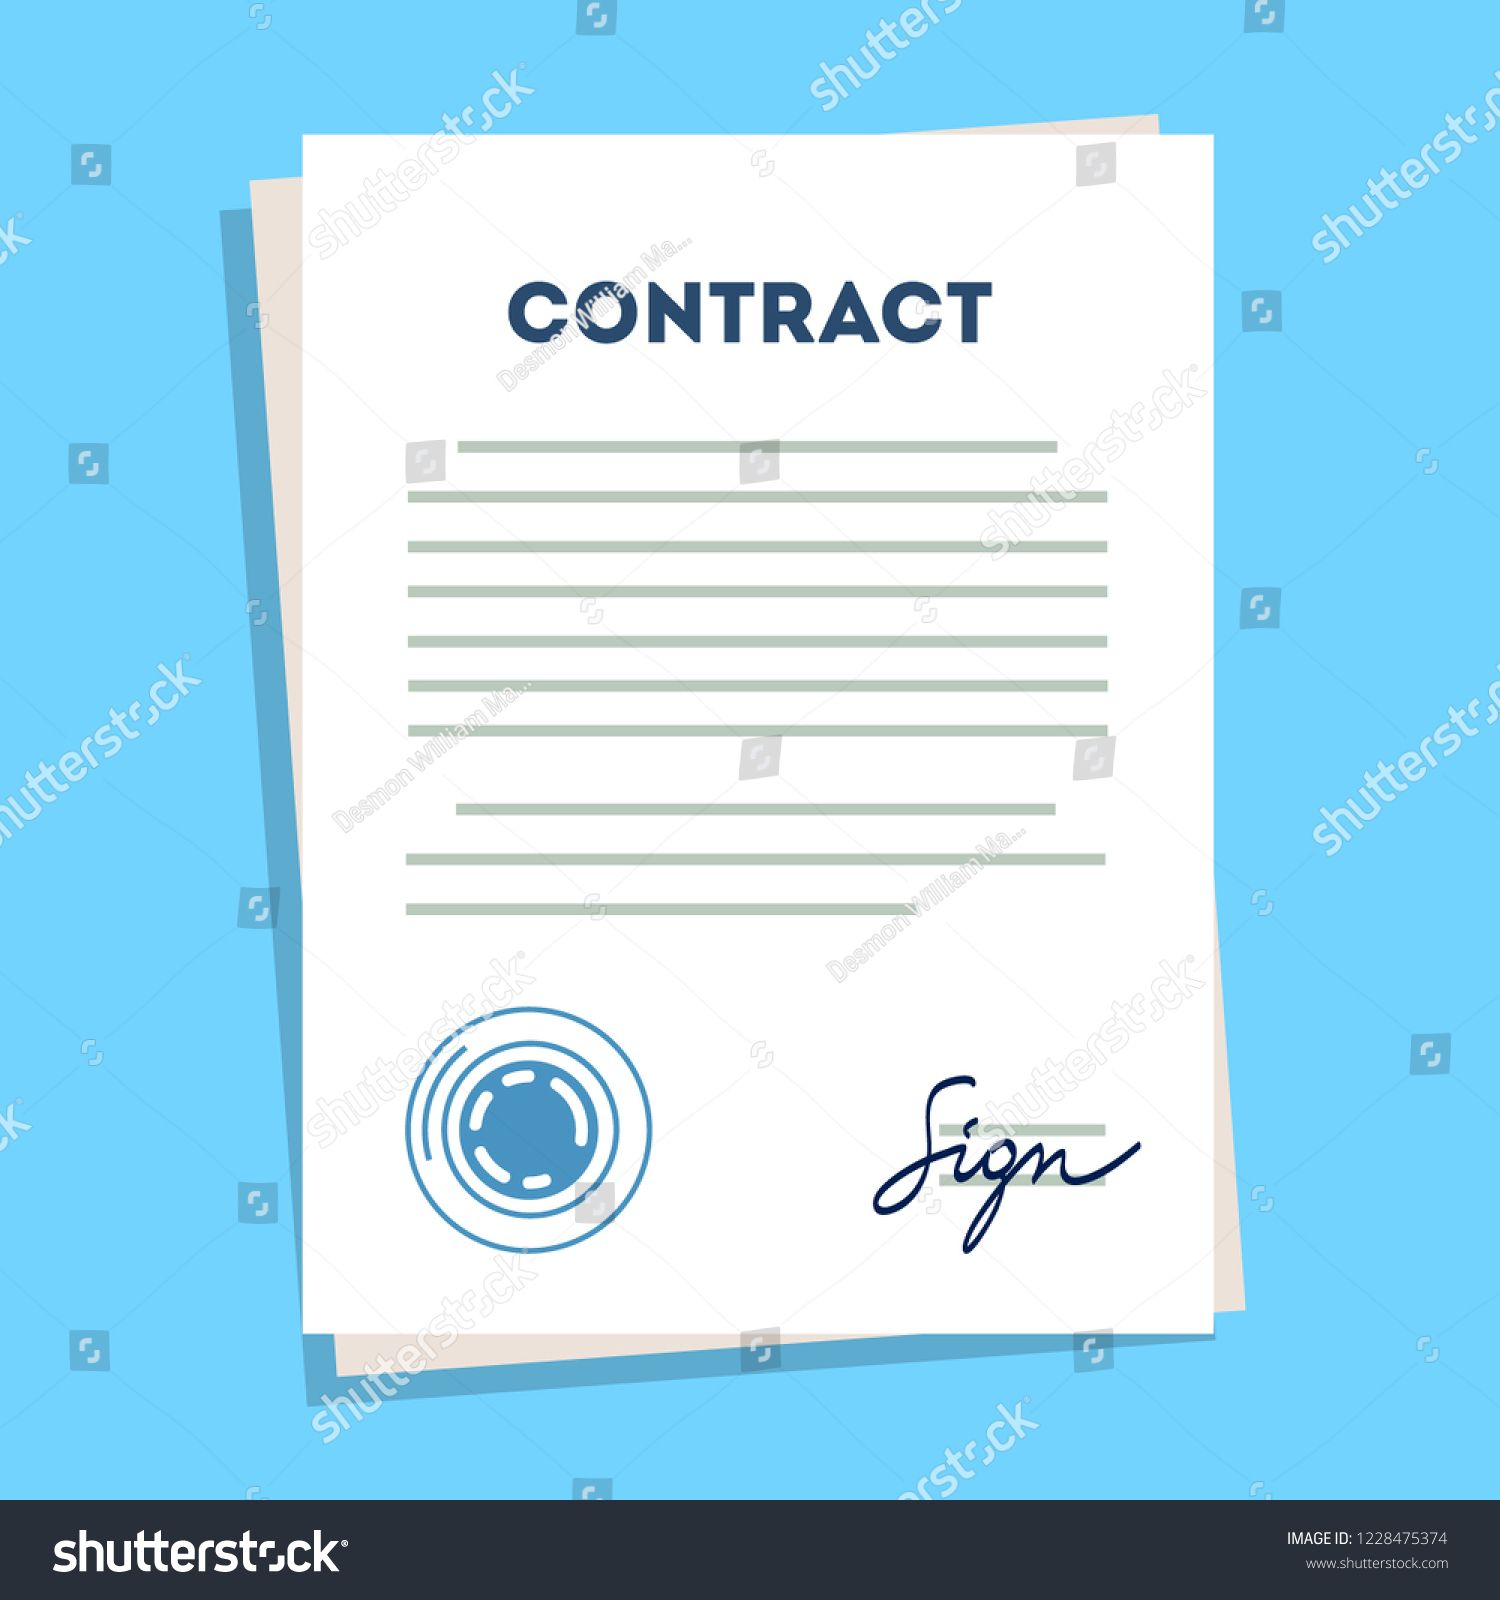 Contract Law Essay Questions And Answers Sharaninfo